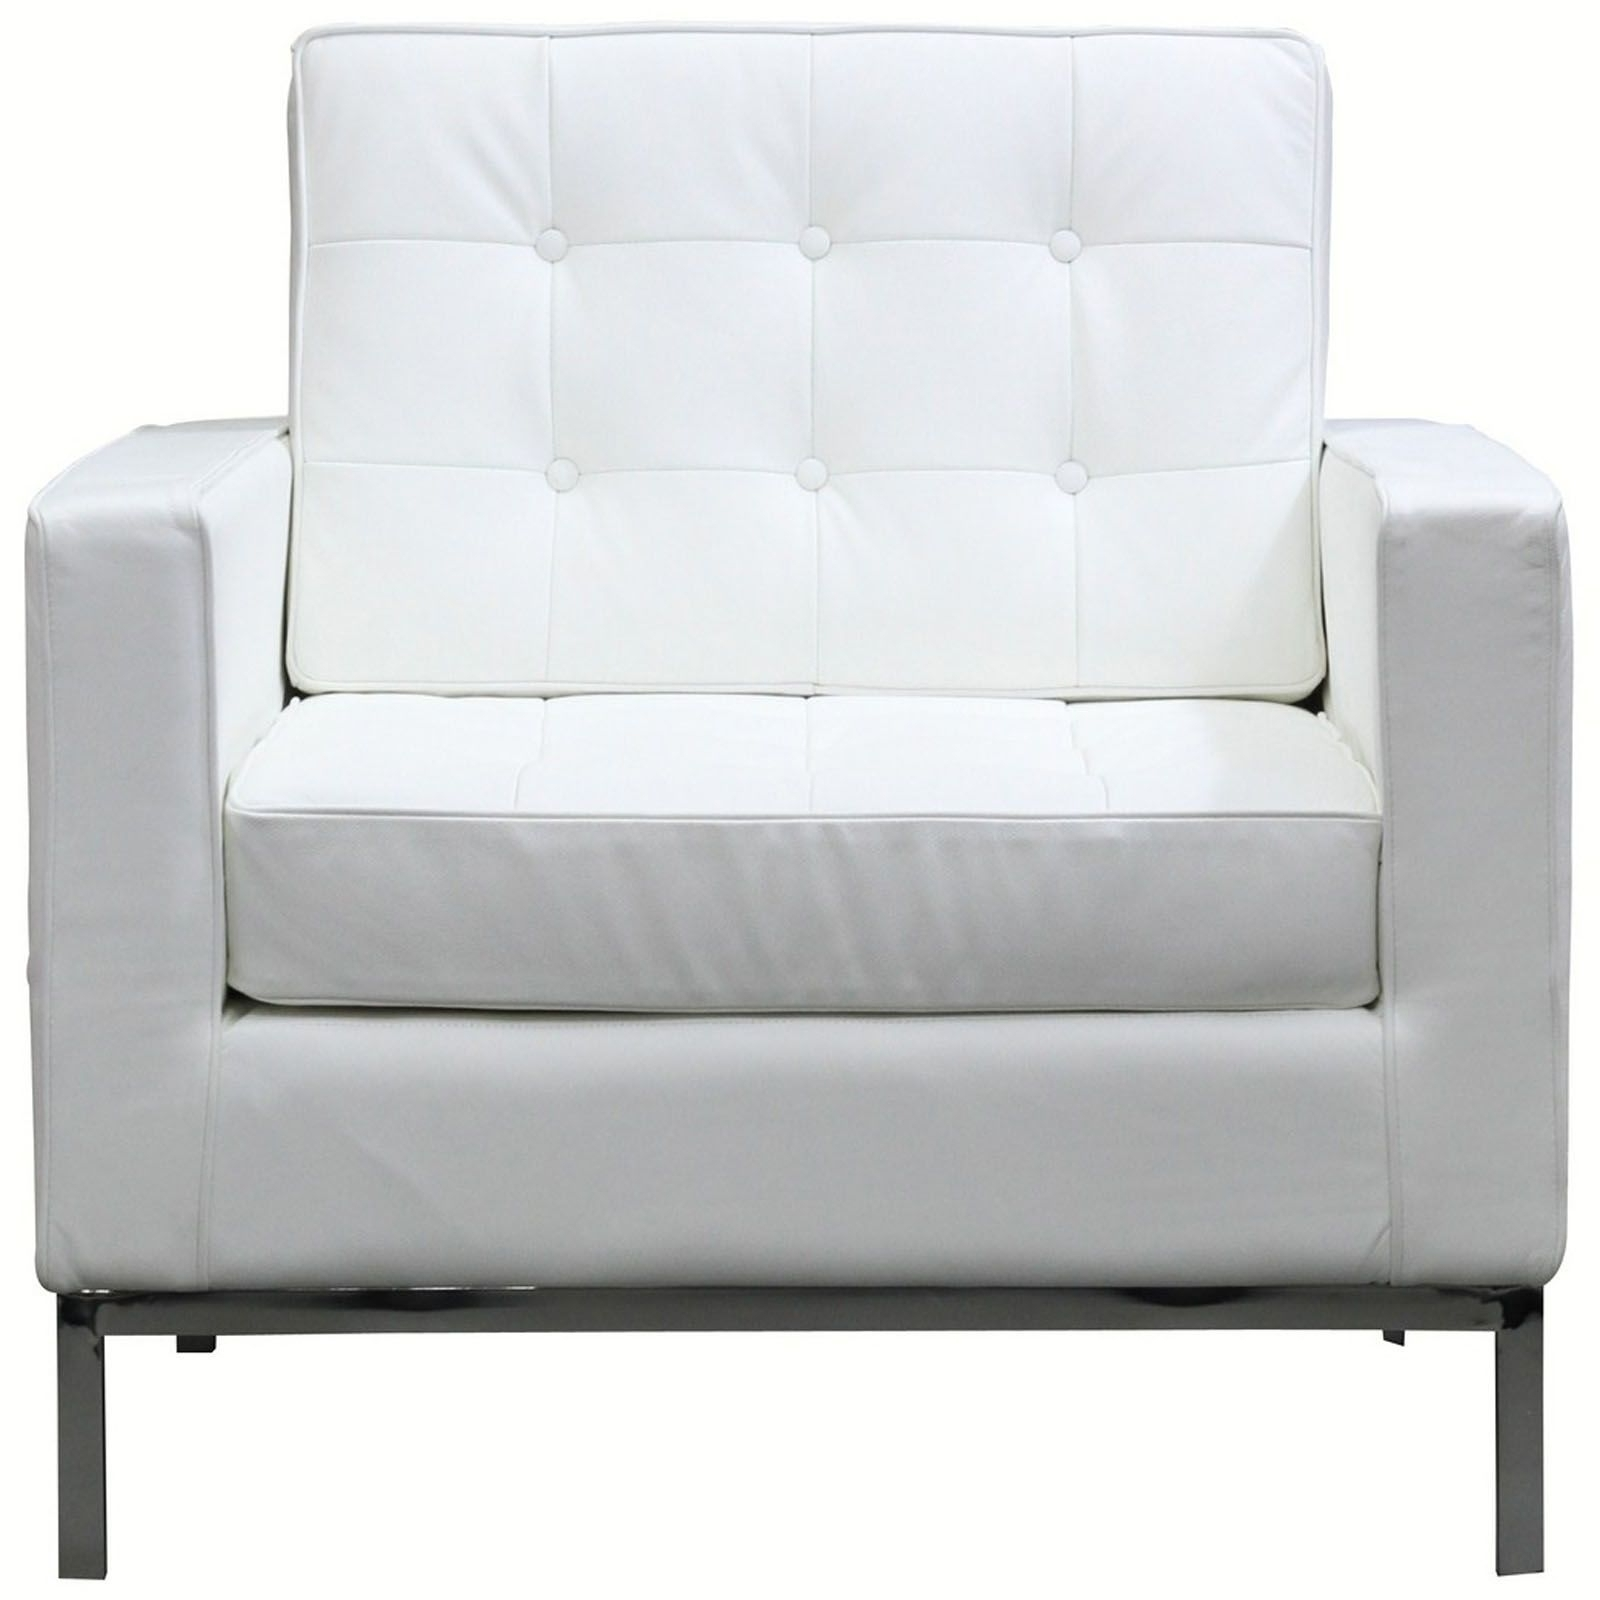 White Leather Sofas, Leather Sofas And Within Most Popular Contemporary Sofas And Chairs (View 11 of 15)